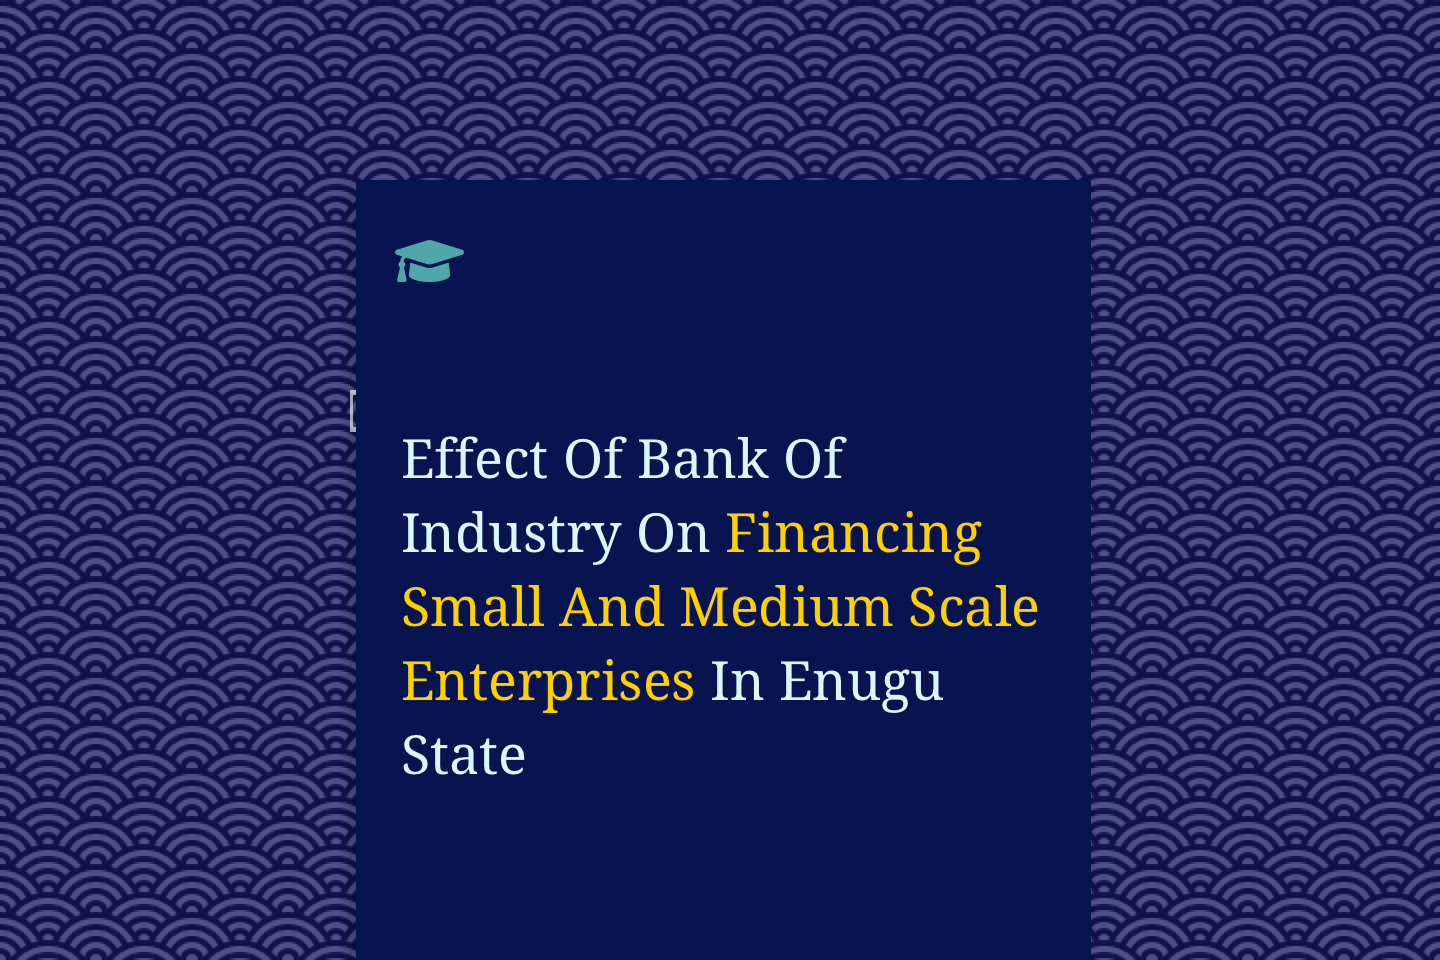 Effect Of Bank Of Industry On Financing Small And Medium Scale Enterprises In Enugu State